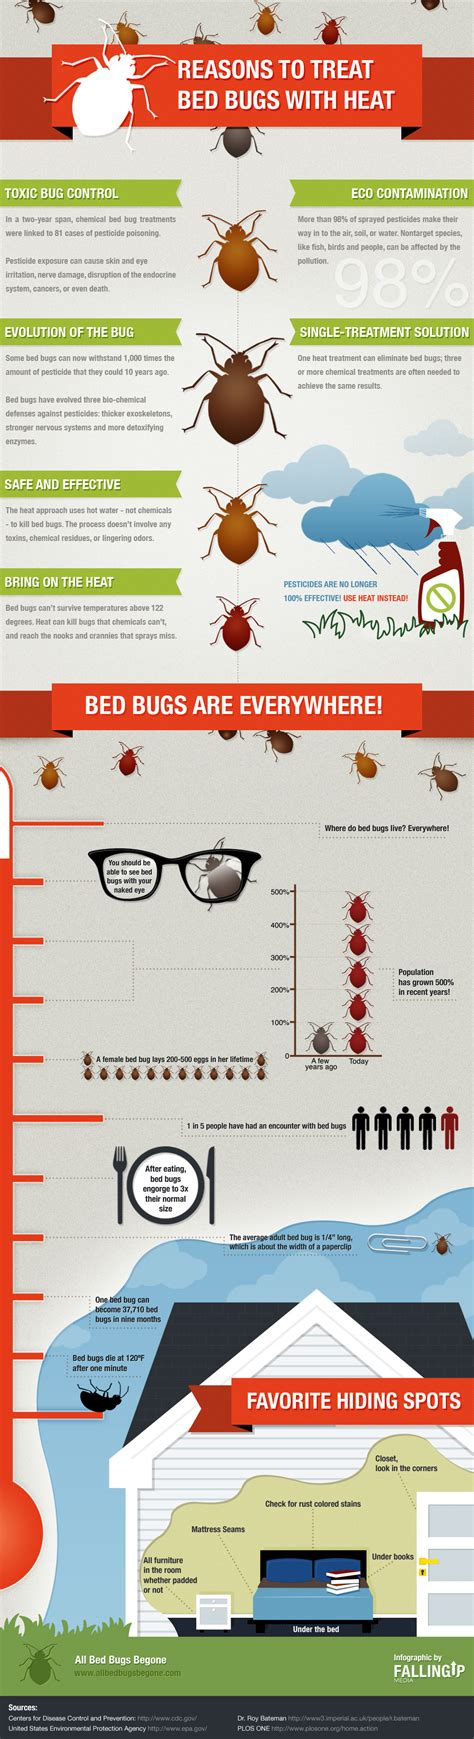 heat treatment bed bugs sensible bed bug heat treatment methods described